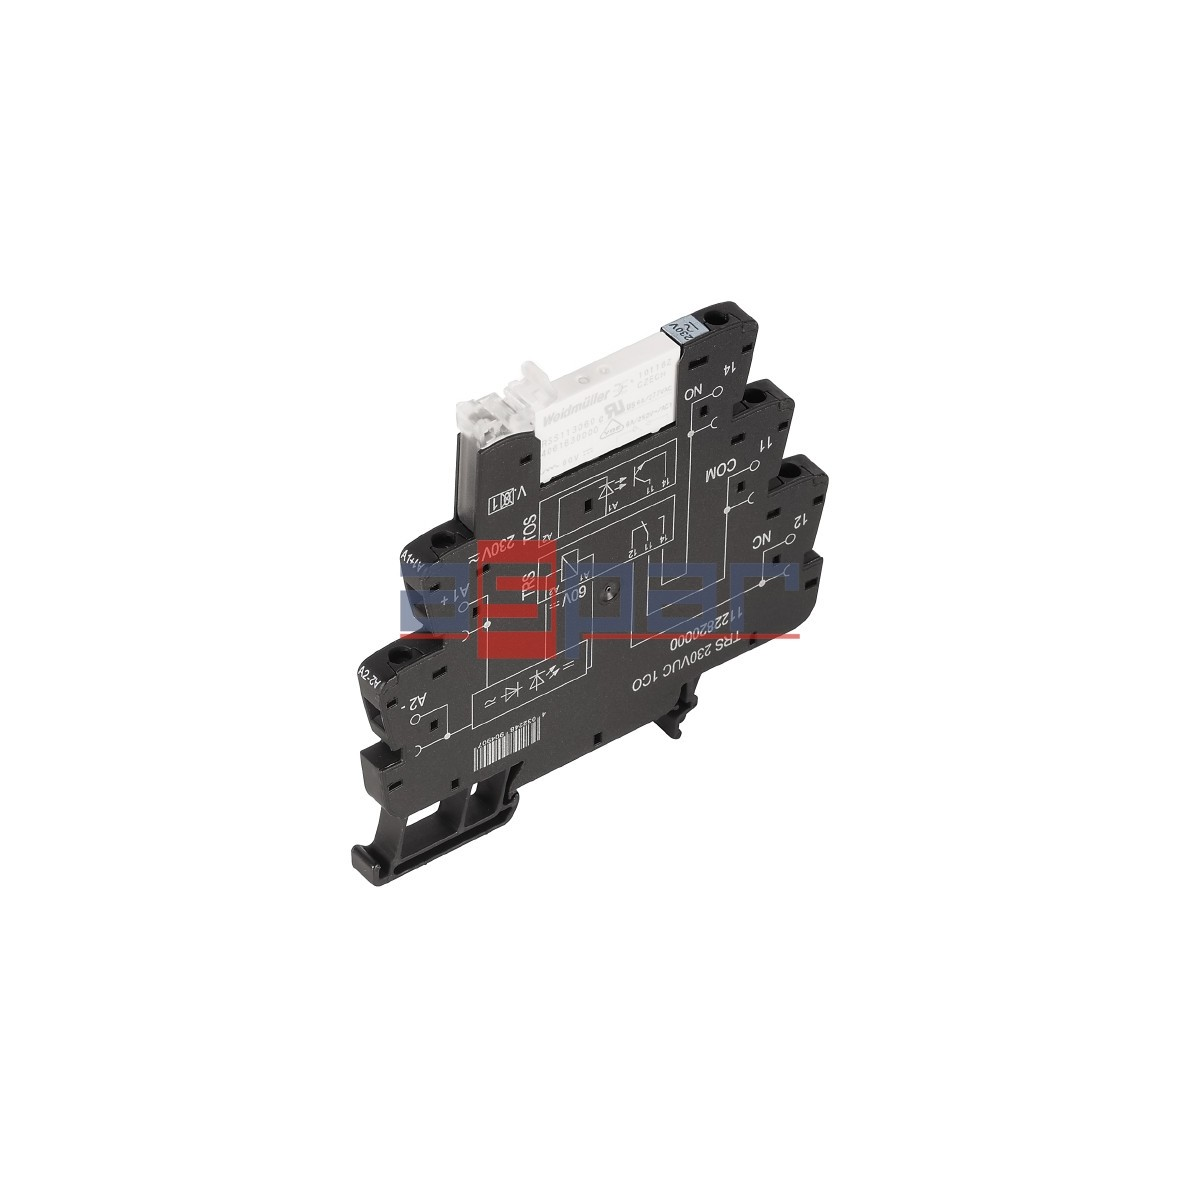 Relay, TRS 230VUC 1CO - 1122820000, 1CO, 6A, 230VAC/DC